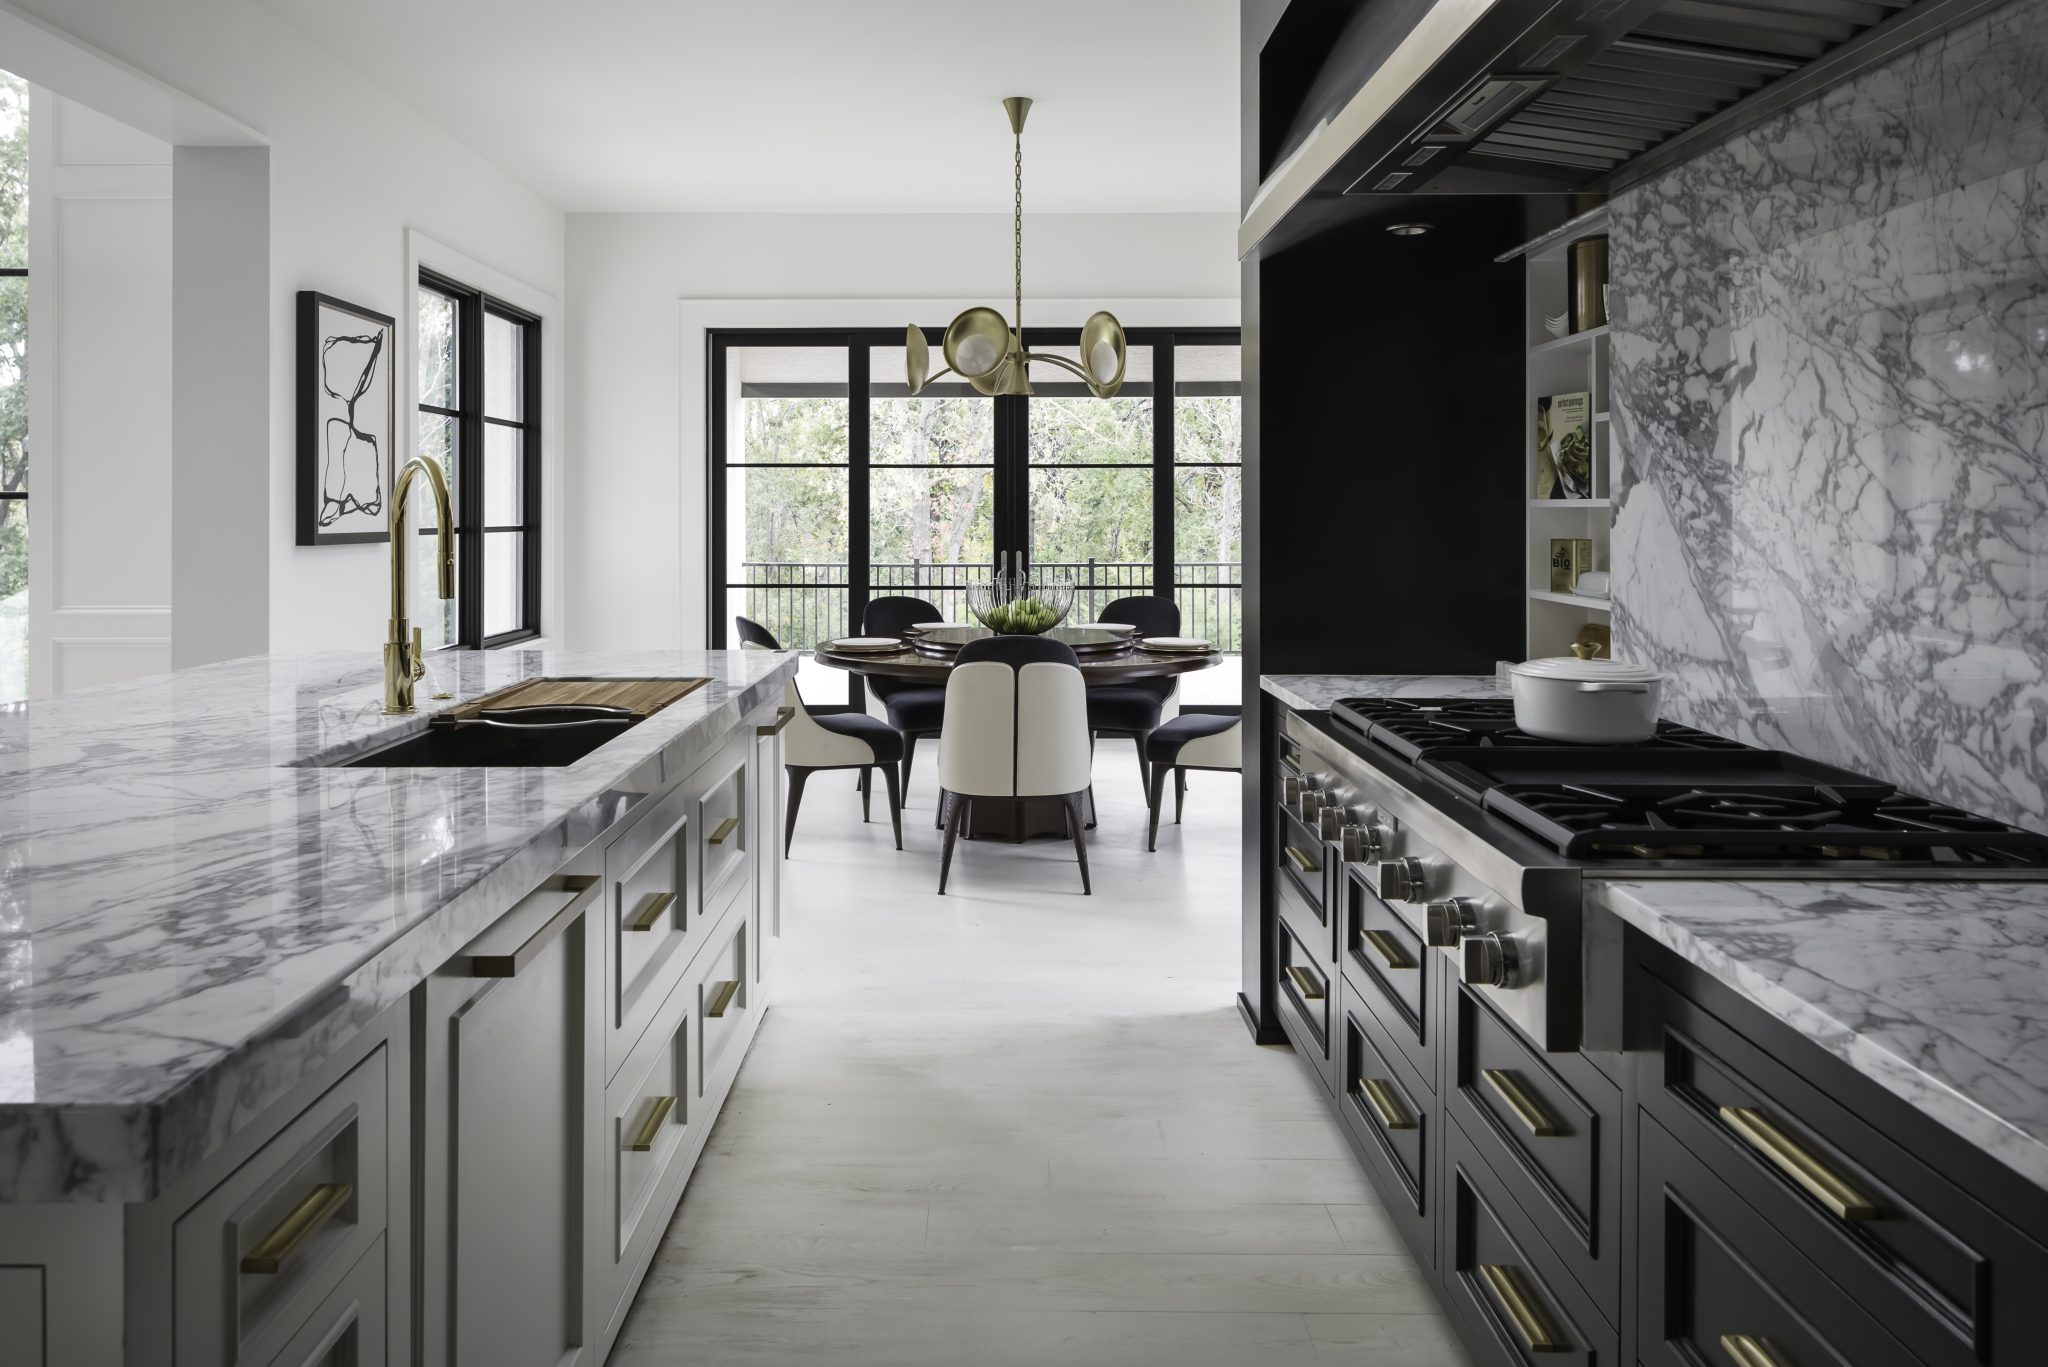 Kitch with black cabinetry and white countertop and walls